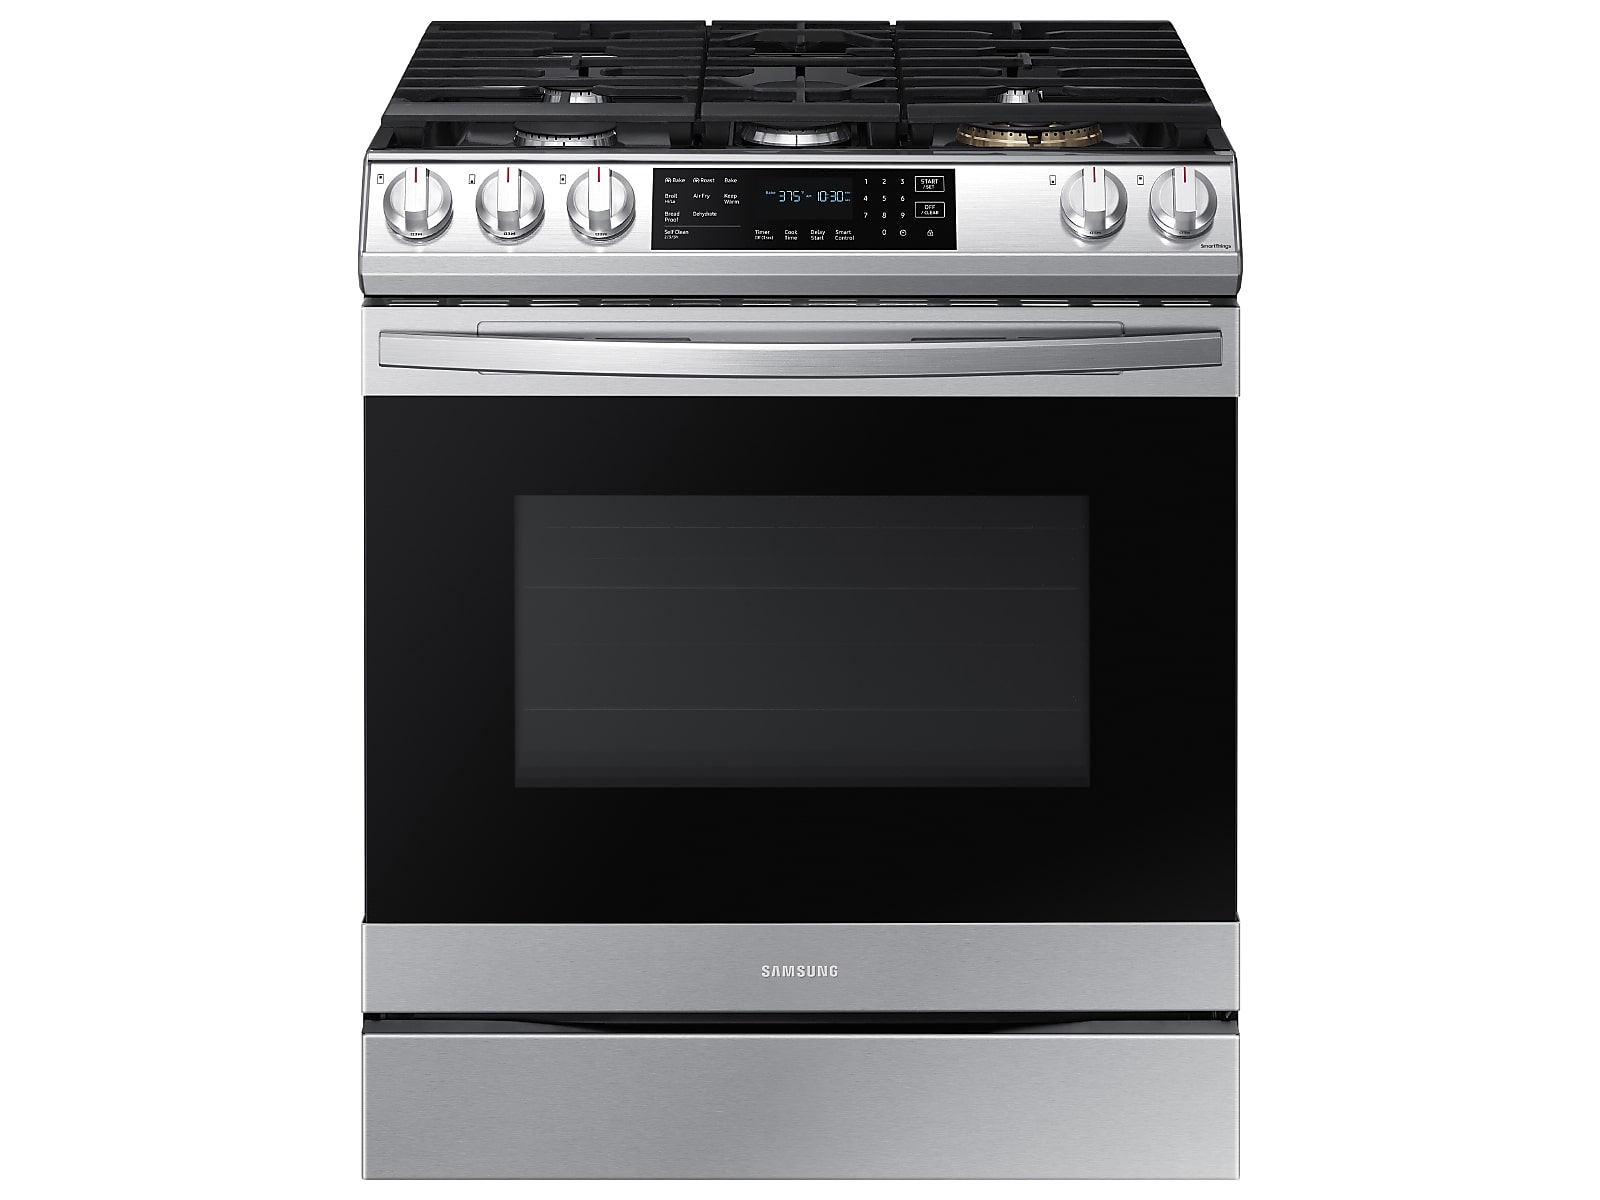 Samsung 6.0 cu. ft. Slide-in Gas Range with Air Fry in Silver(NX60T8511SS/AA)